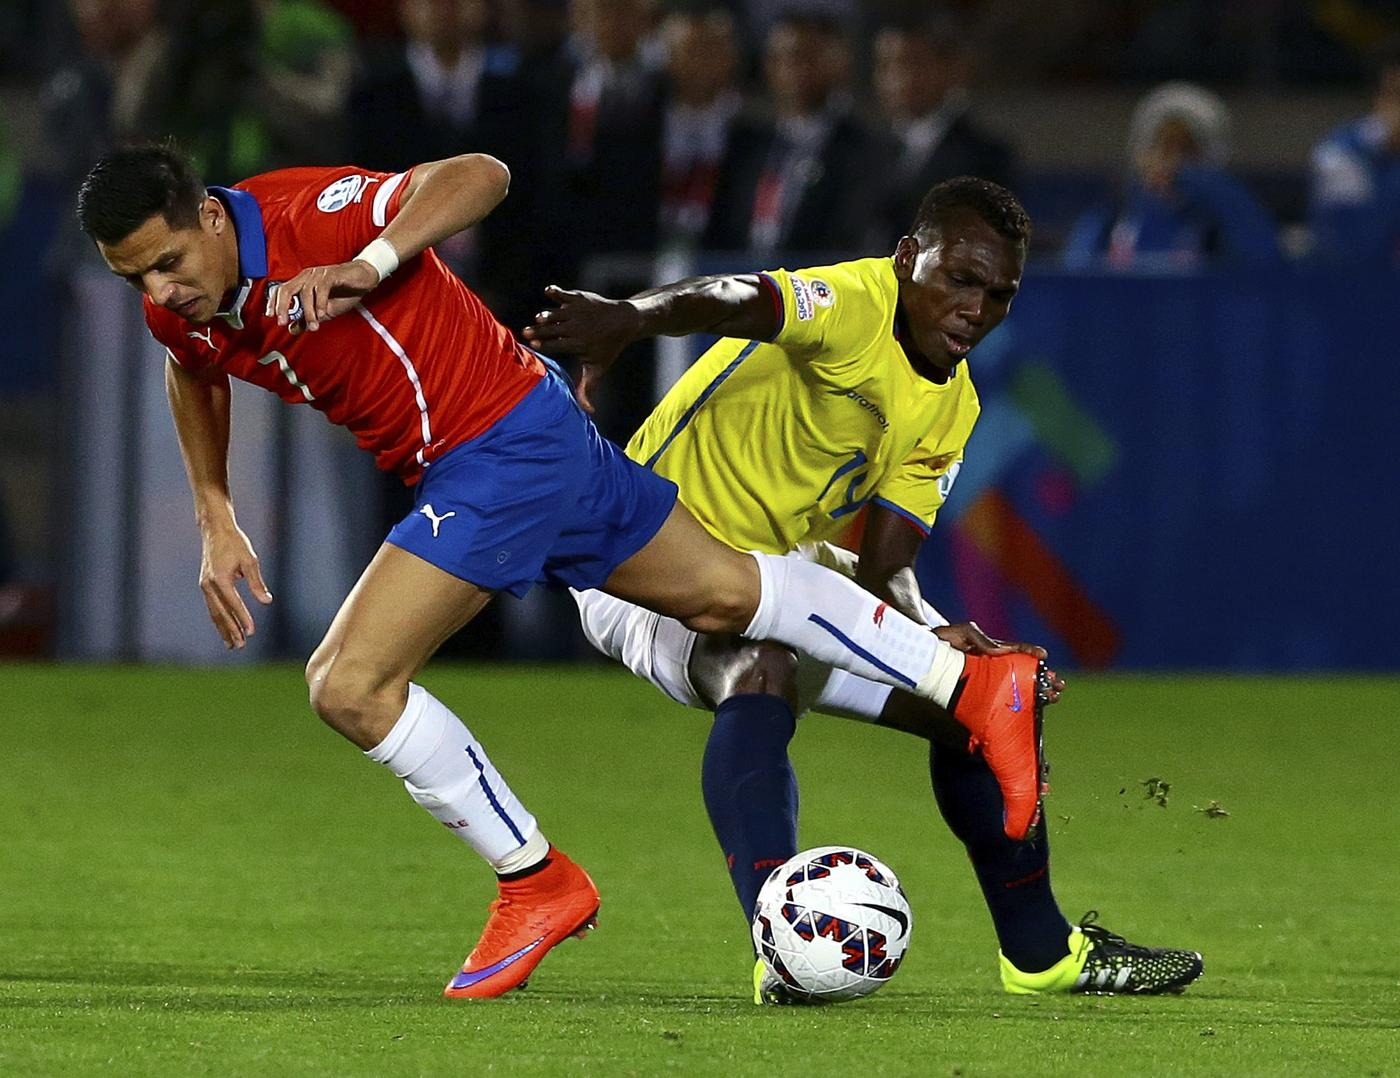 Arsenal hero Alexis Sanchez provides sublime assist as Chile get off to winning start at Copa America